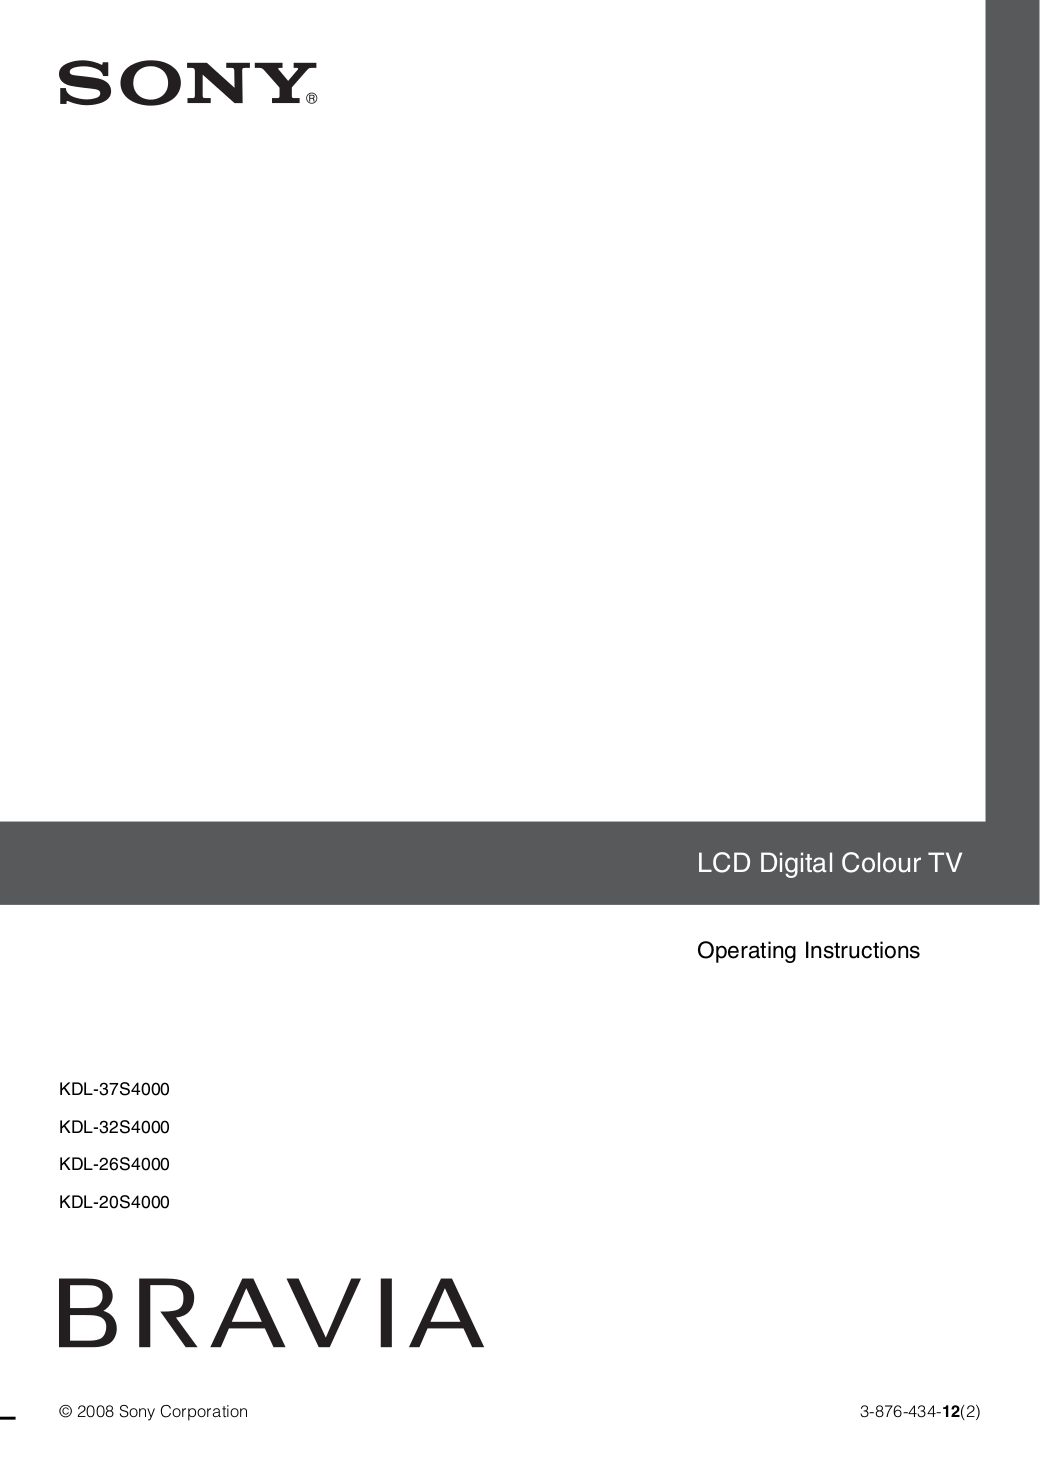 Download free pdf for Sony BRAVIA KDL-20S4000 TV manual